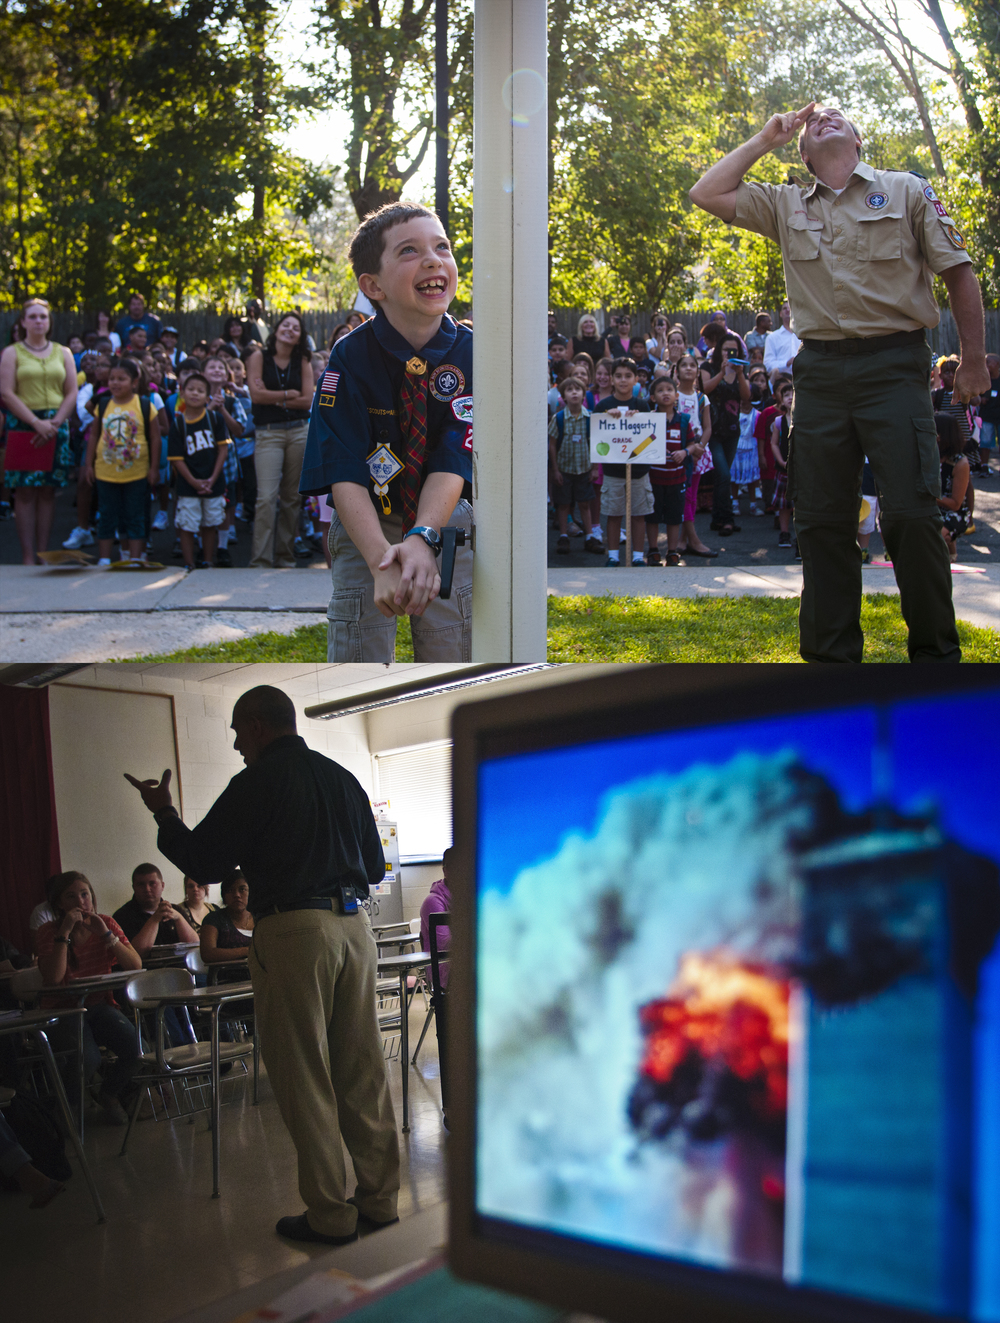 Top: West Hartford, CT  |  09.01.2011  |  On the first day of classes at Smith School, 4th-grader Sean Dombrofski raises the flag while his father Mark (R) salutes. Bottom: Bristol, CT  |  09.01.2011  |  U.S. History teacher Larry Covino talks with his Bristol Central High School class about their memories of the September 11 attacks.